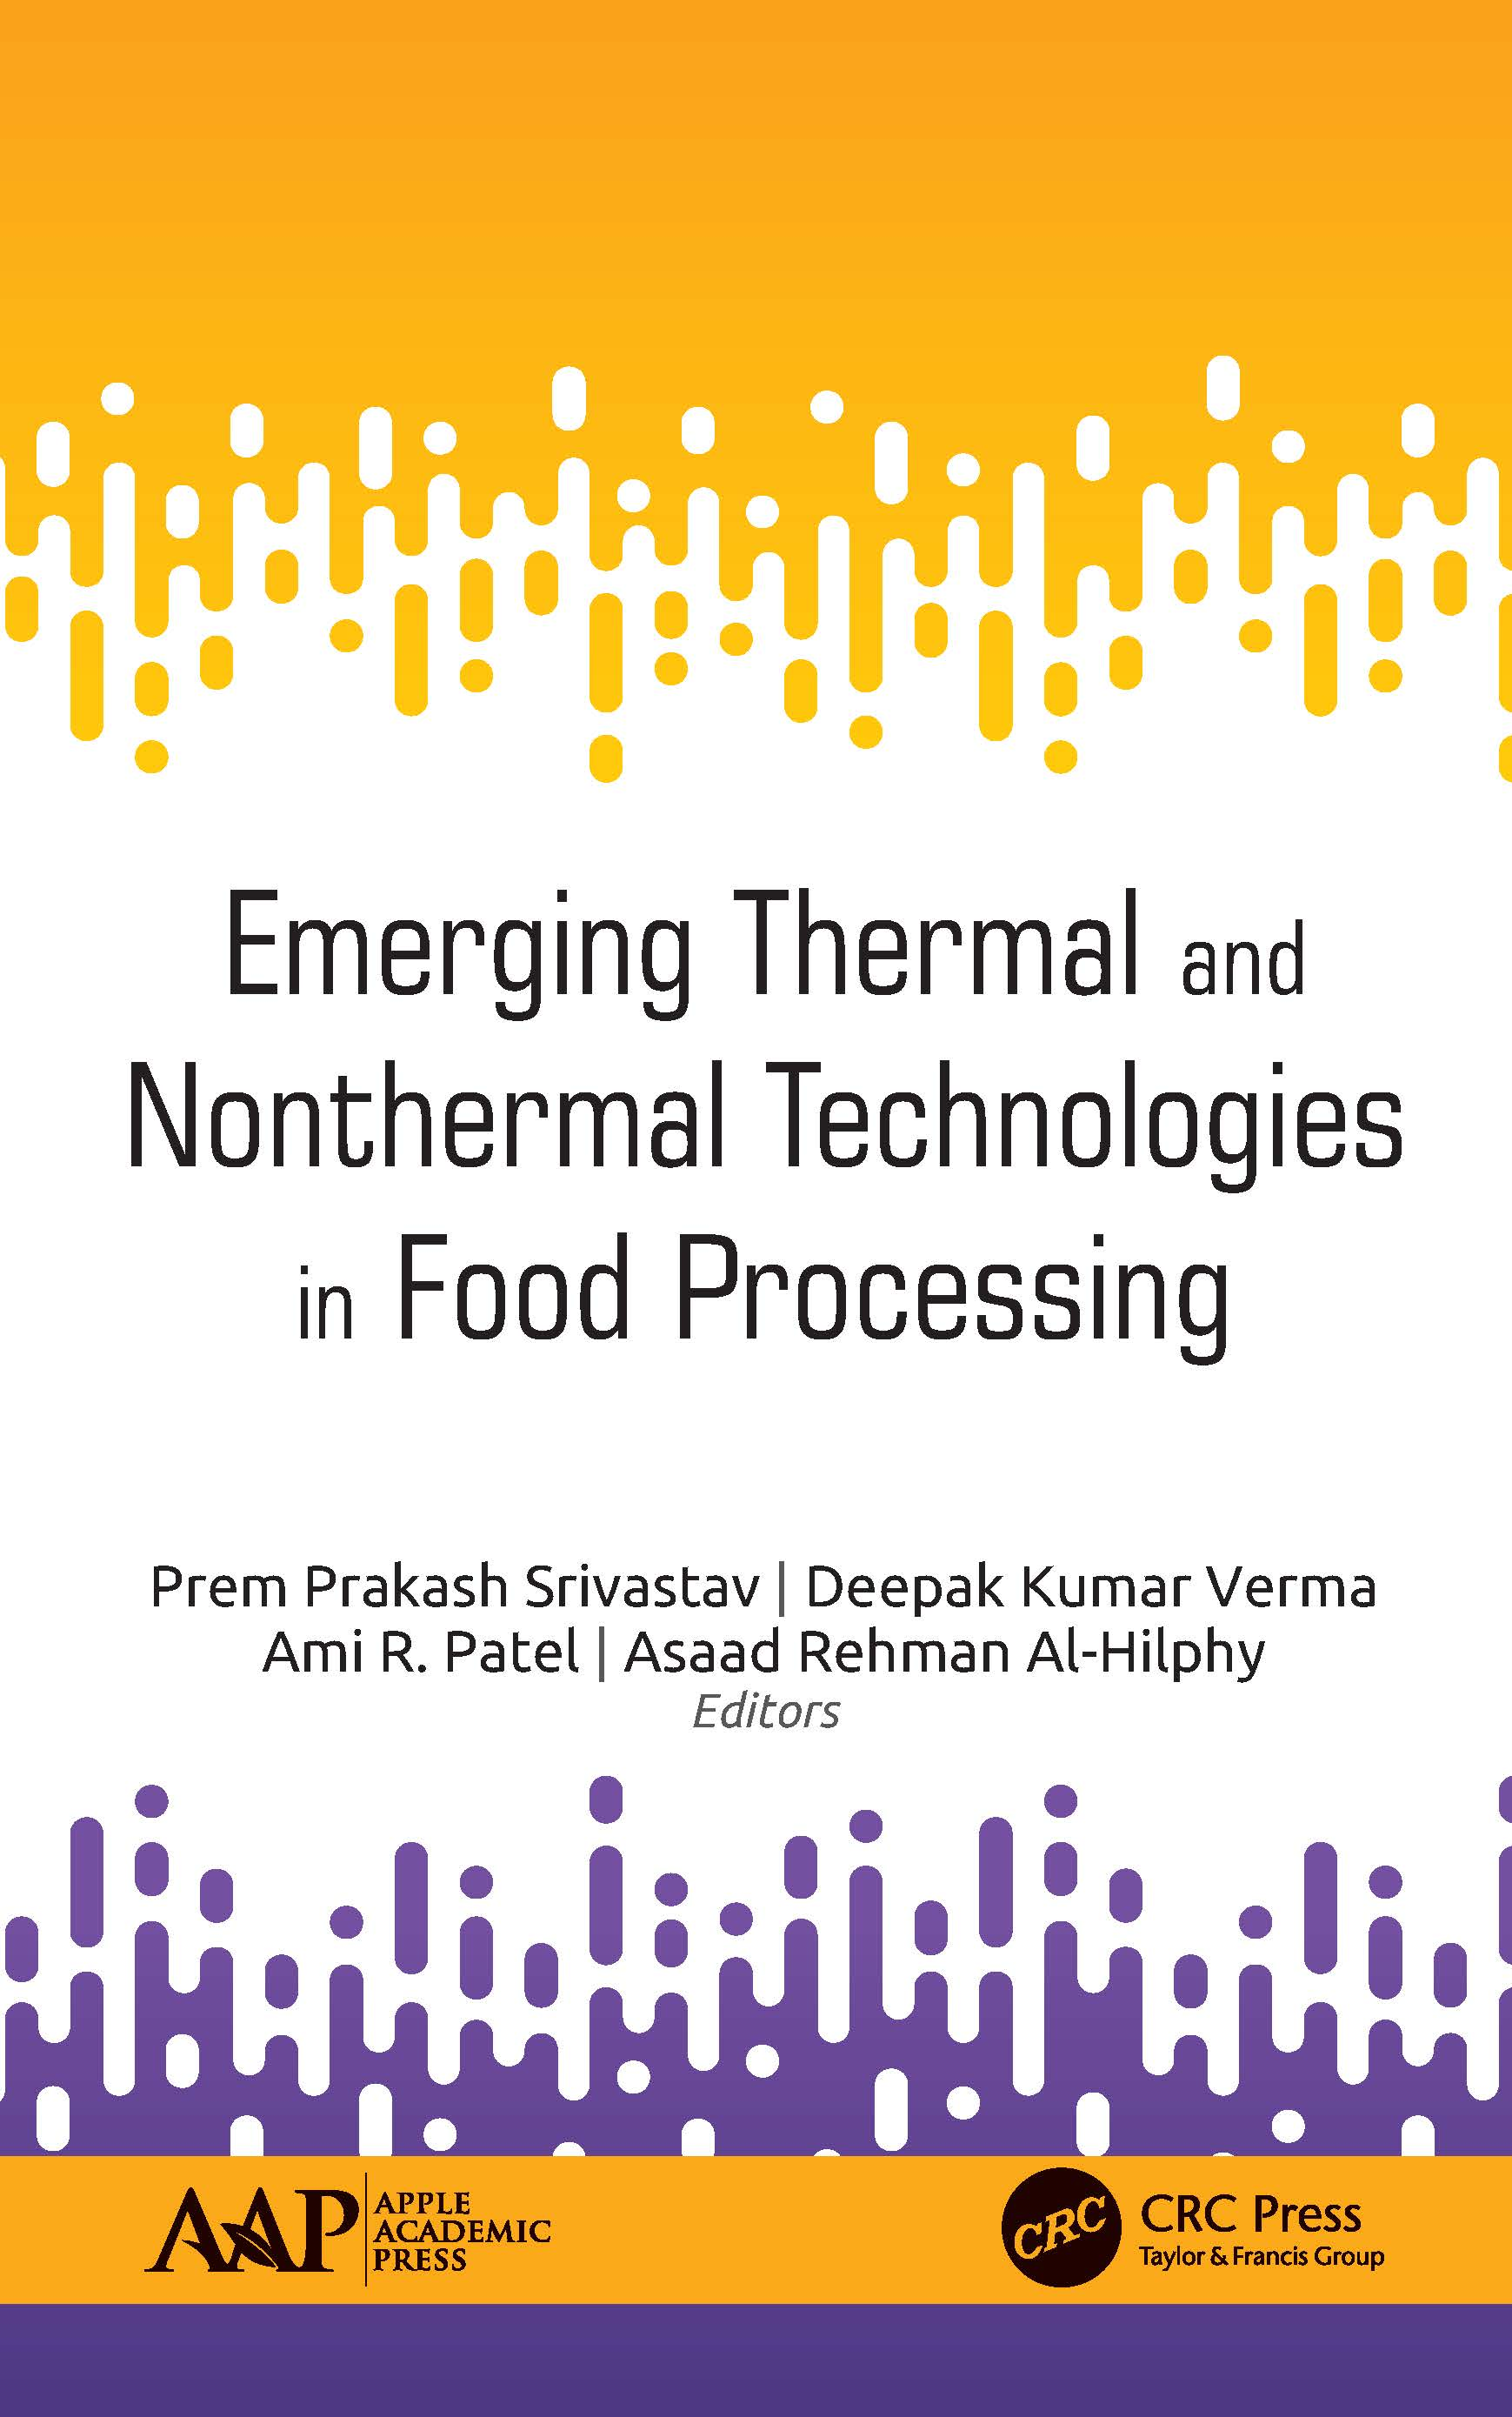 Emerging Thermal and Nonthermal Technologies in Food Processing book cover